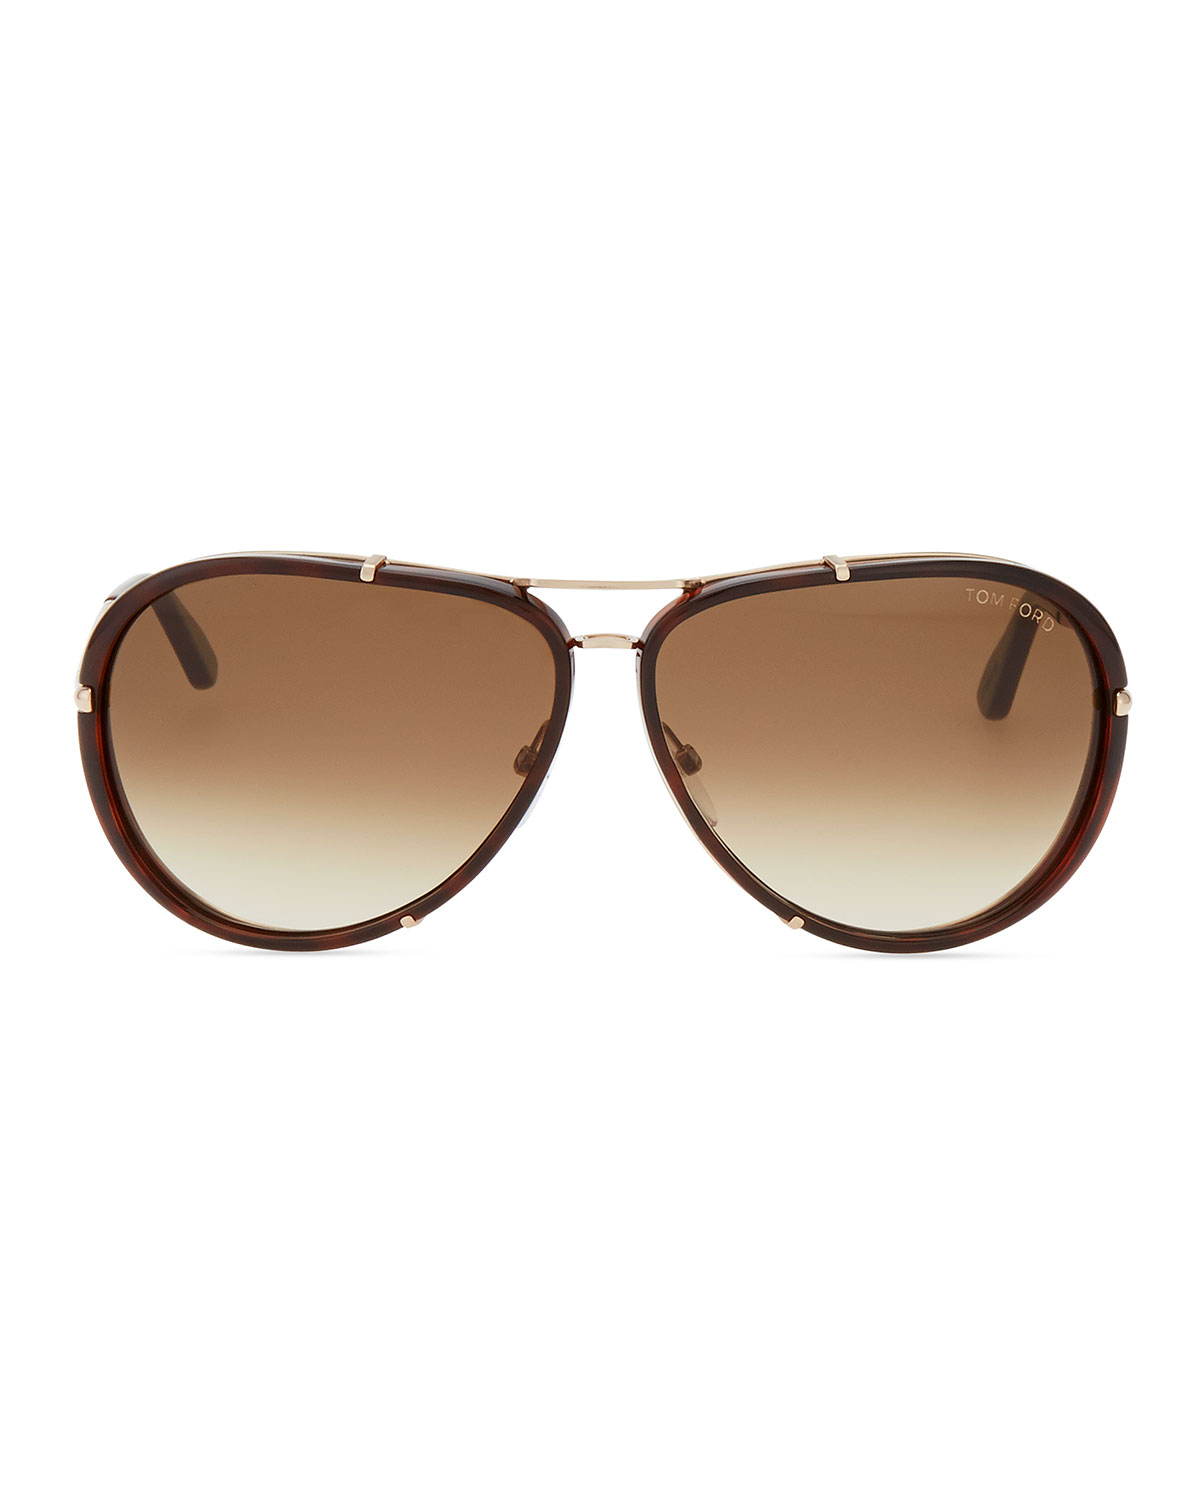 tom ford cyrille aviator sunglasses in brown for men havana rose gold. Cars Review. Best American Auto & Cars Review